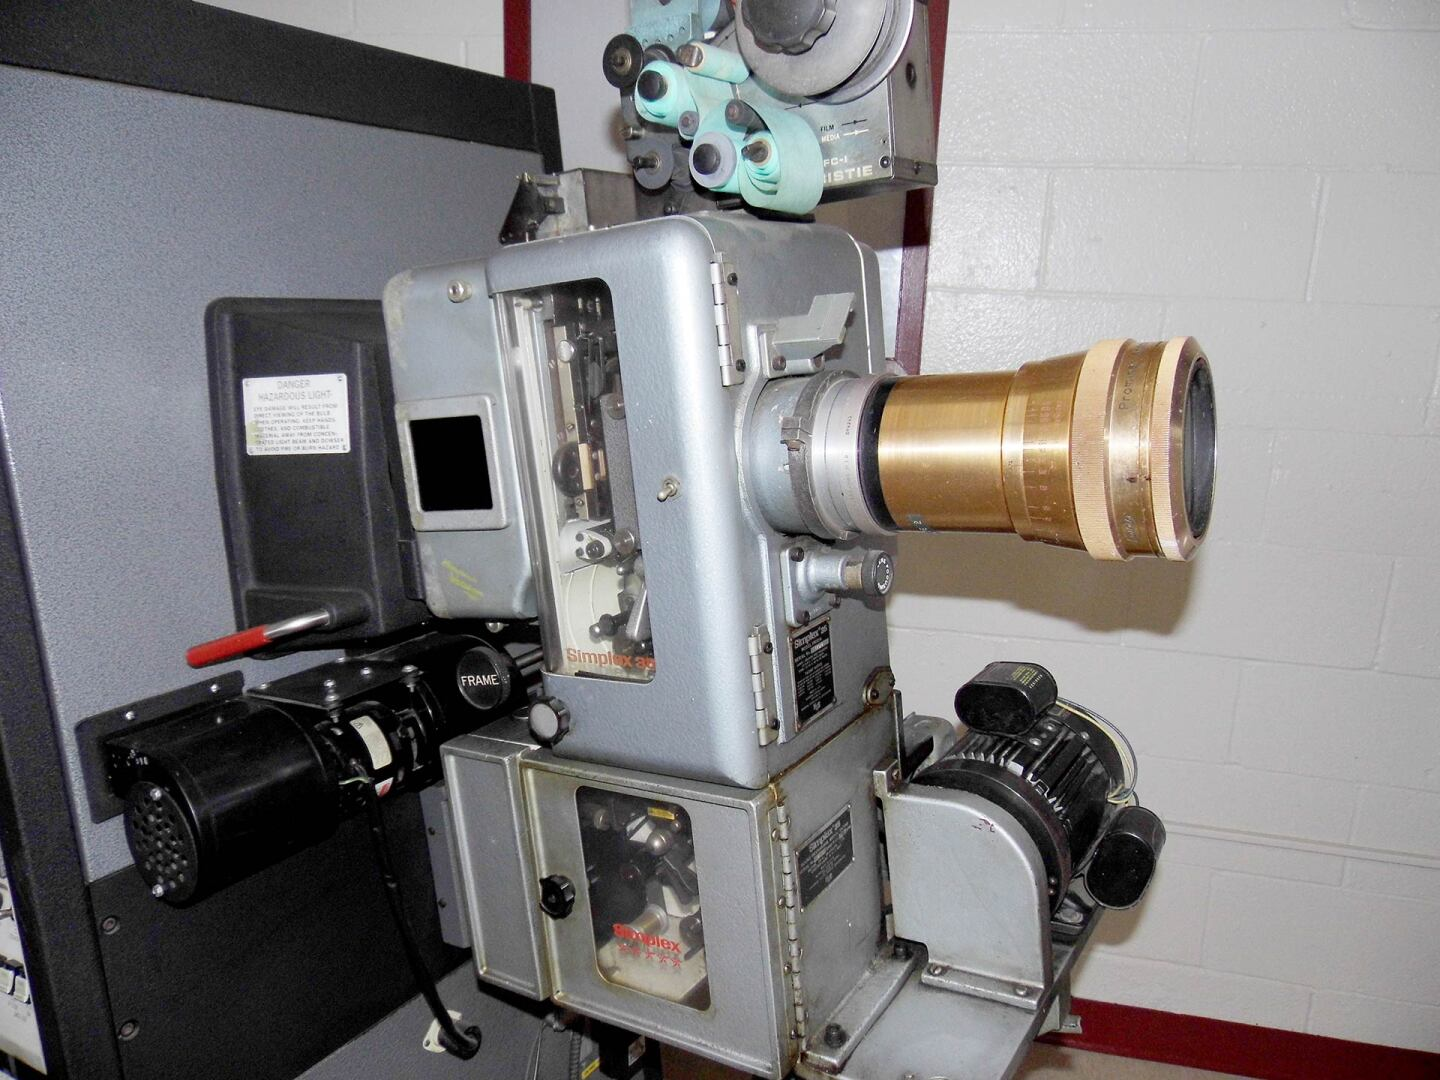 Vineland Drive-In's concession stand has son old projection room equipment on display, like a lamp projector, film winder machine and old reels. | Sandi Hemmerlein